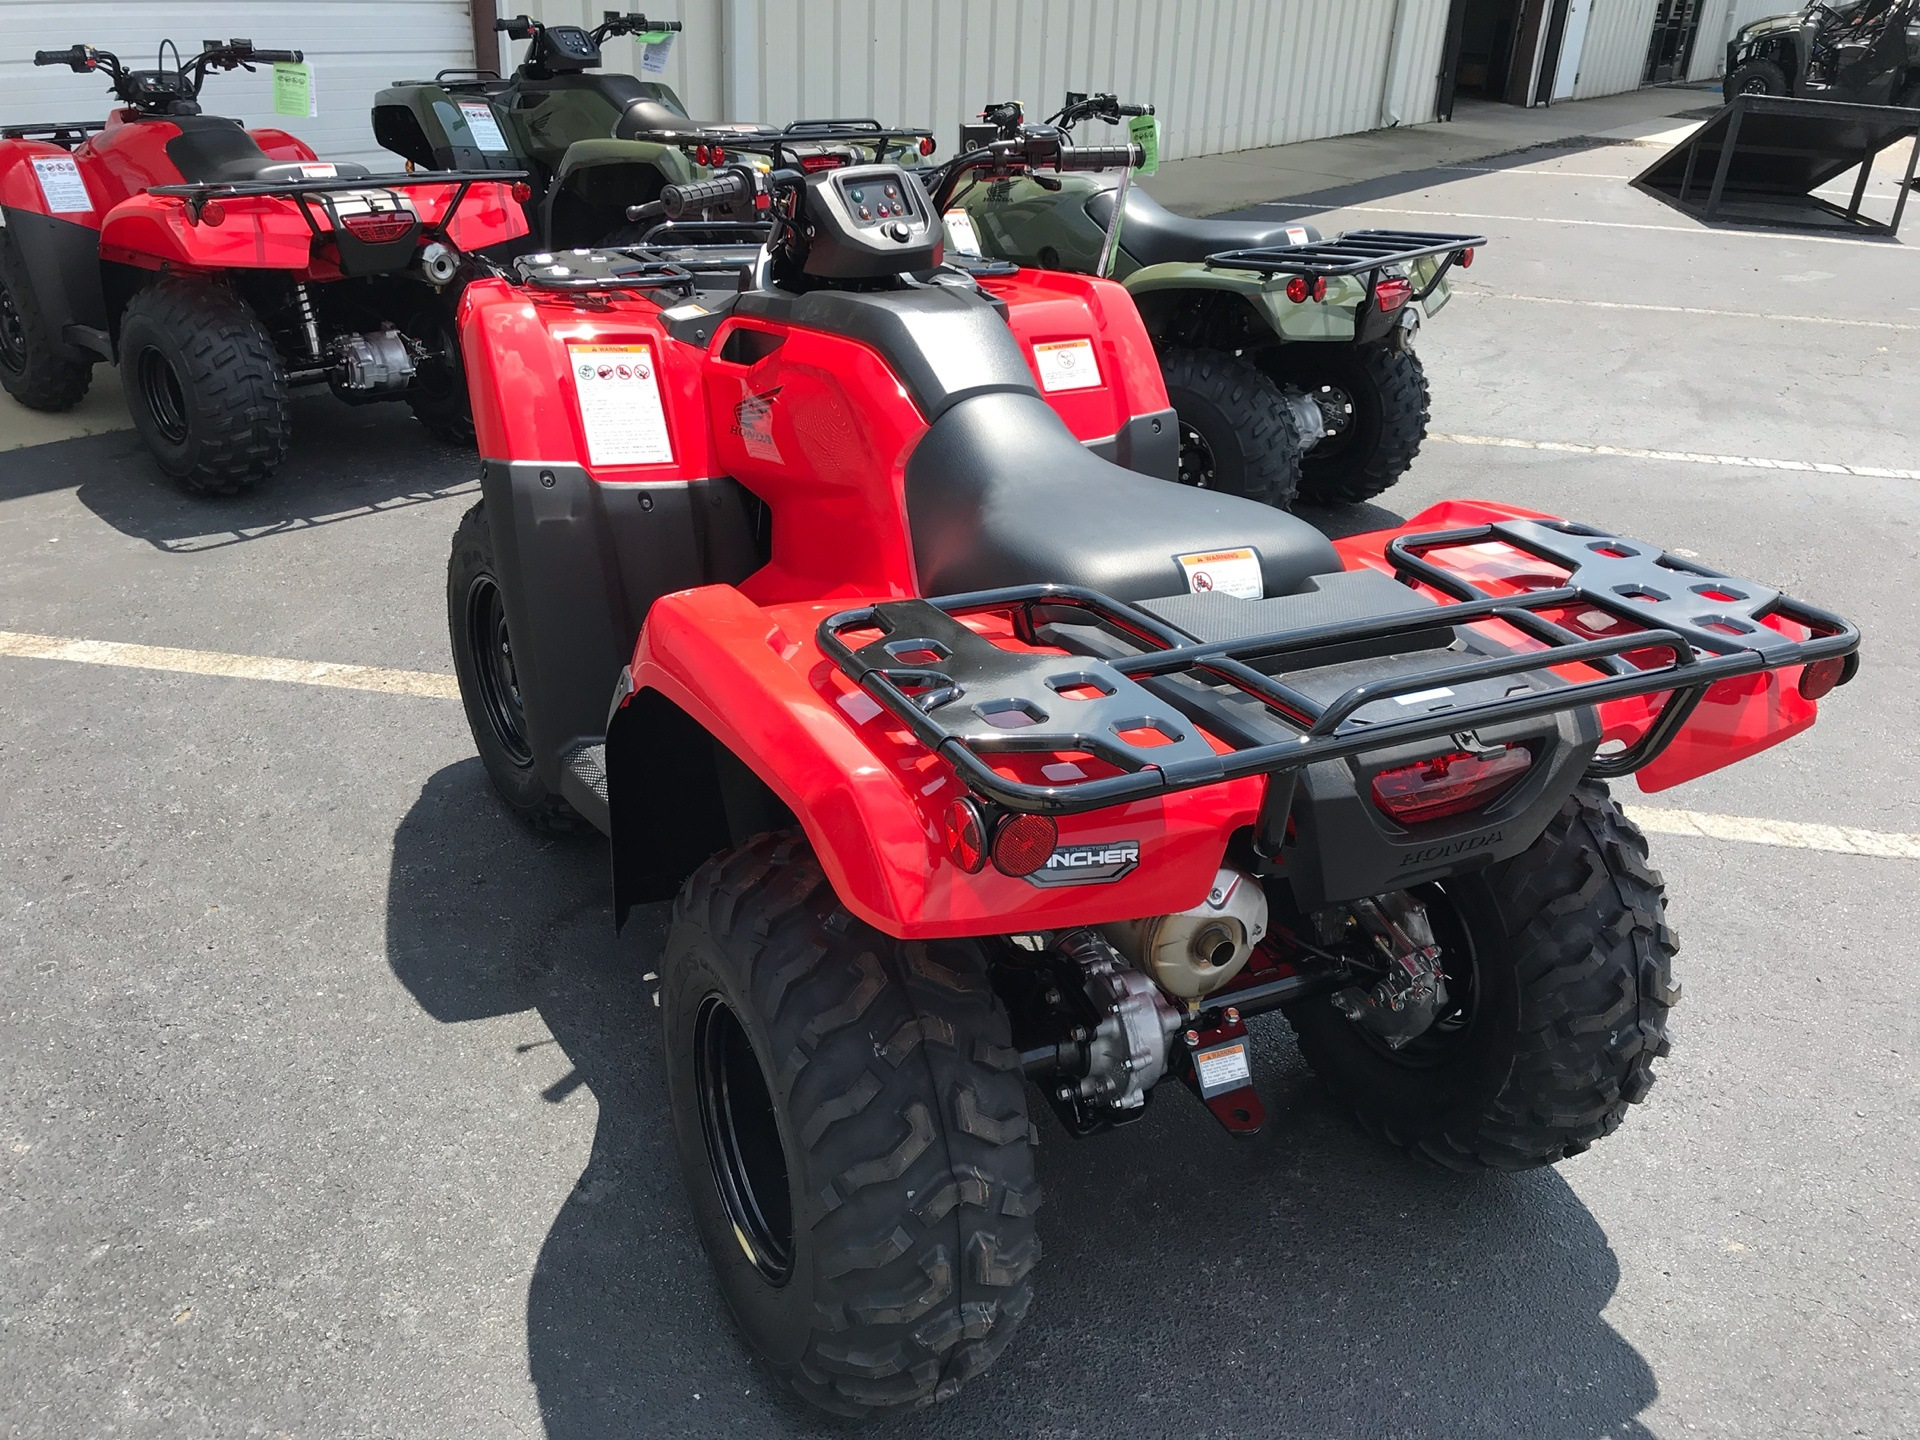 2020 Honda FourTrax Rancher in Sanford, North Carolina - Photo 3